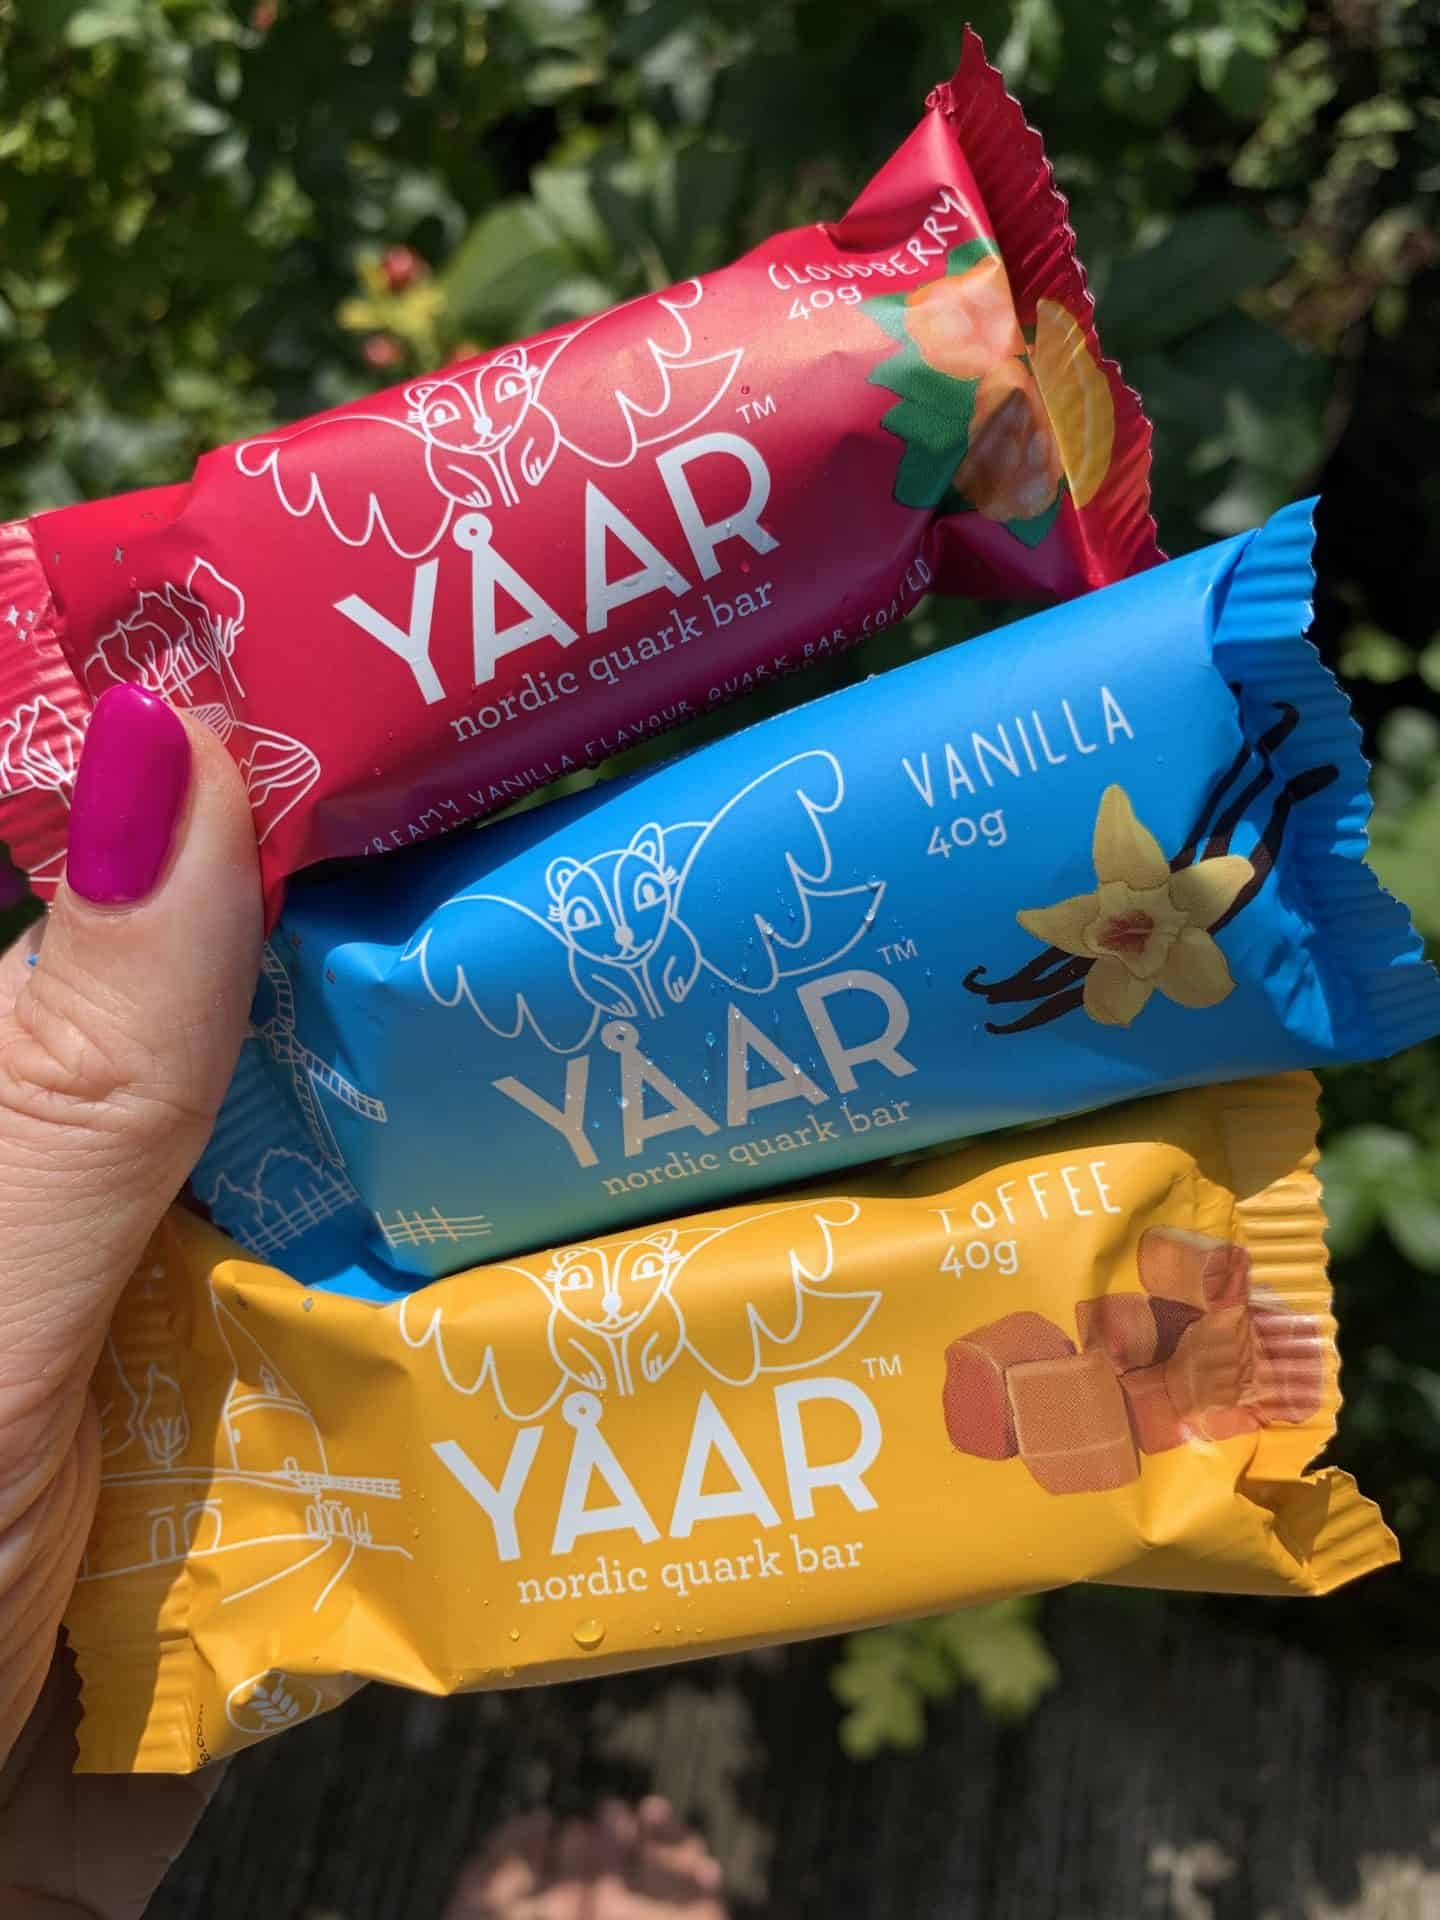 gluten free finds uk 2019 yaar bars